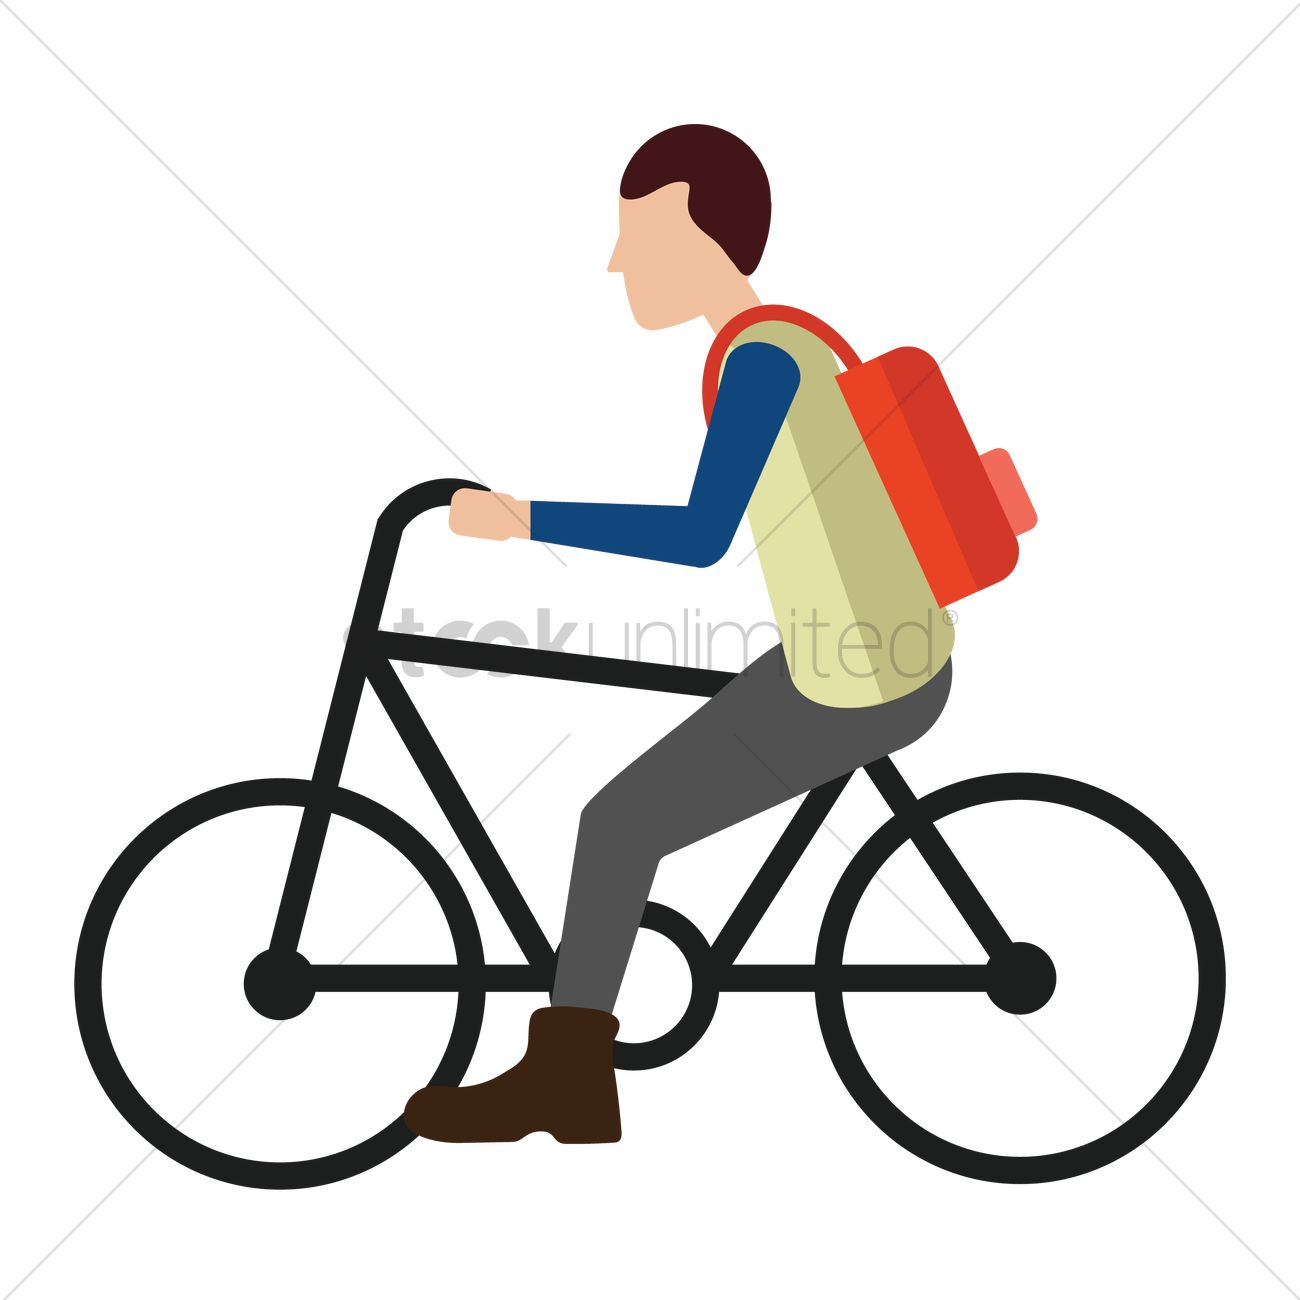 Person Riding Bike Clipart - Bicycling and the Best Bike Ideas